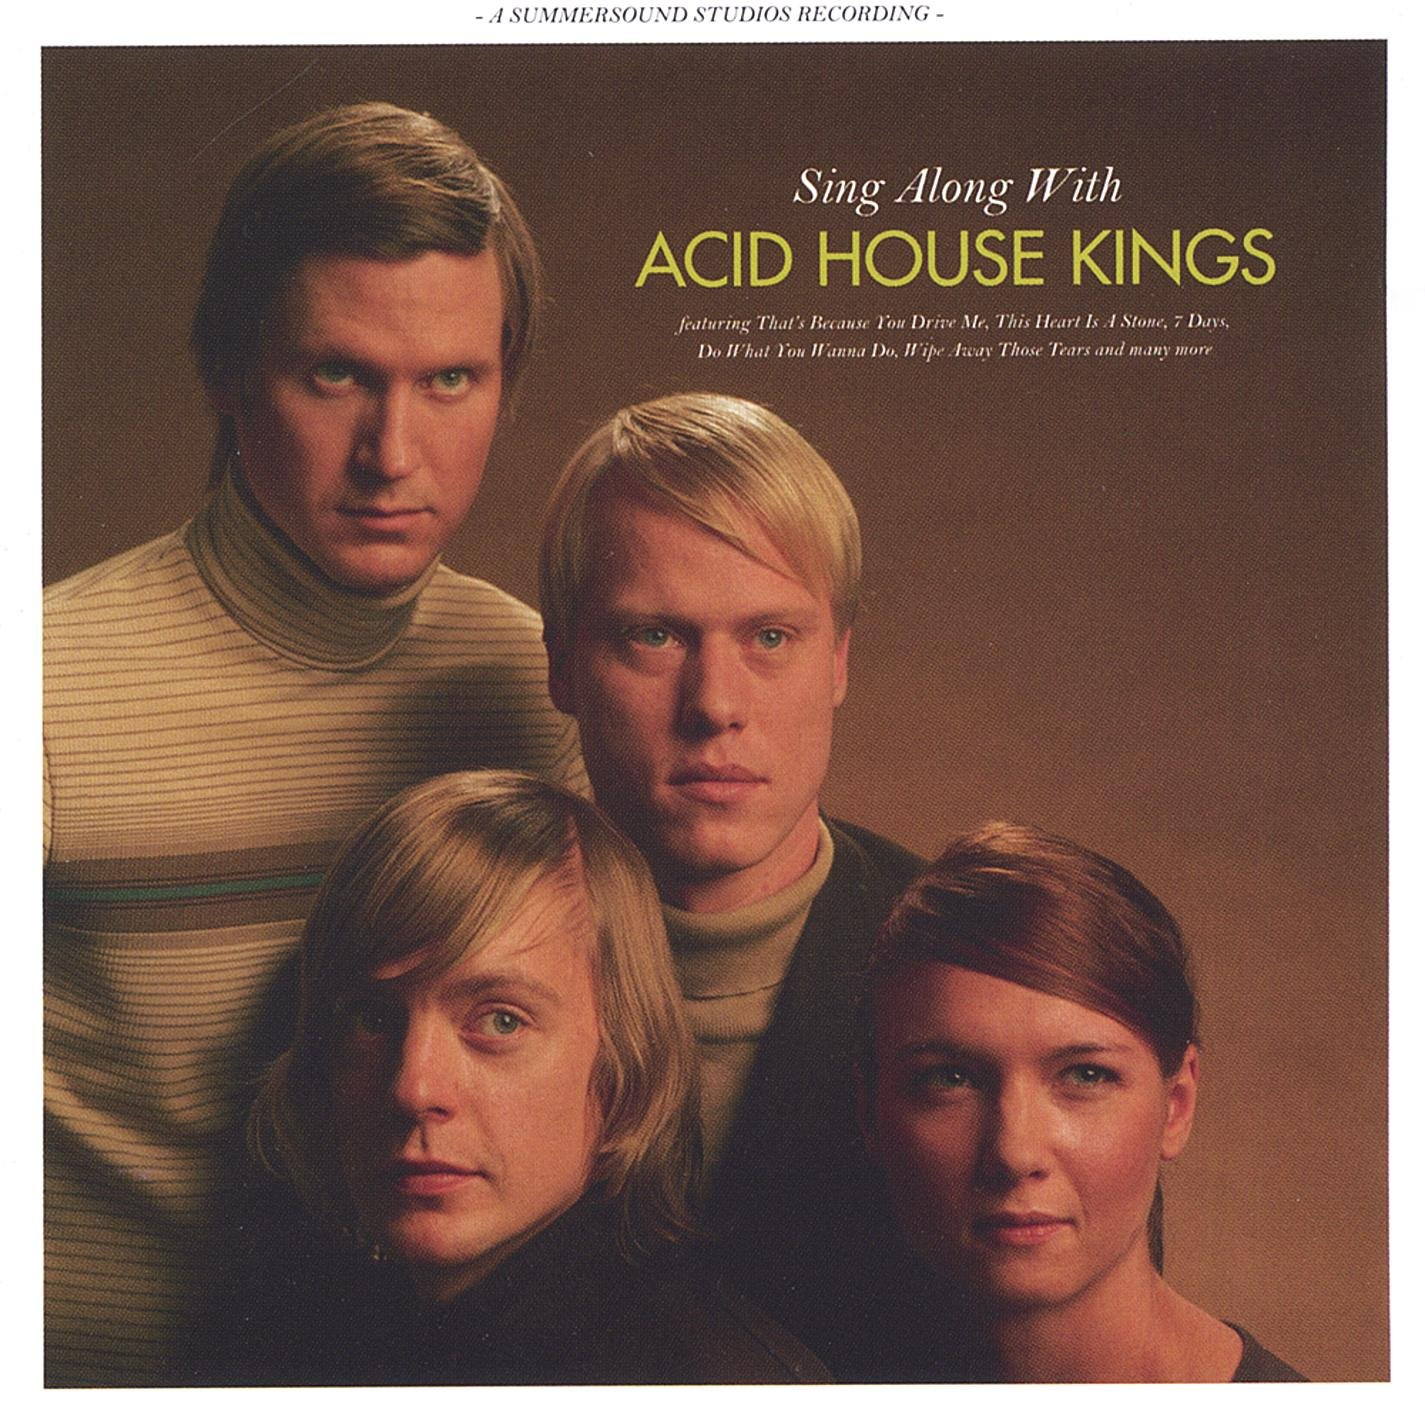 Acid House Kings - Sing Along With Acid House Kings (2005) [FLAC] Download